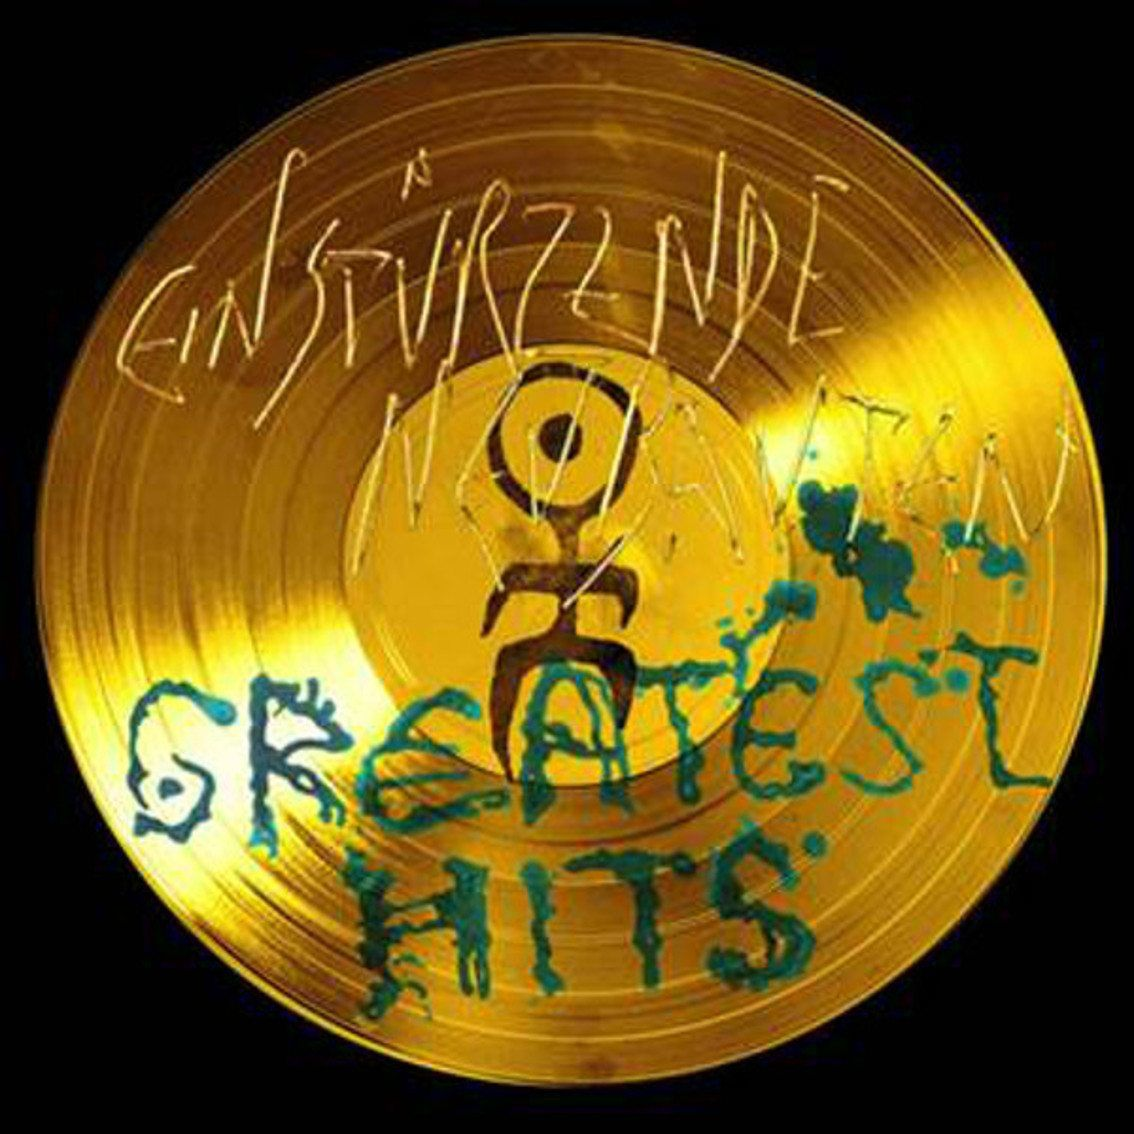 Einstürzende Neubauten goes gold vinyl with'Greatest Hits' - get yours here